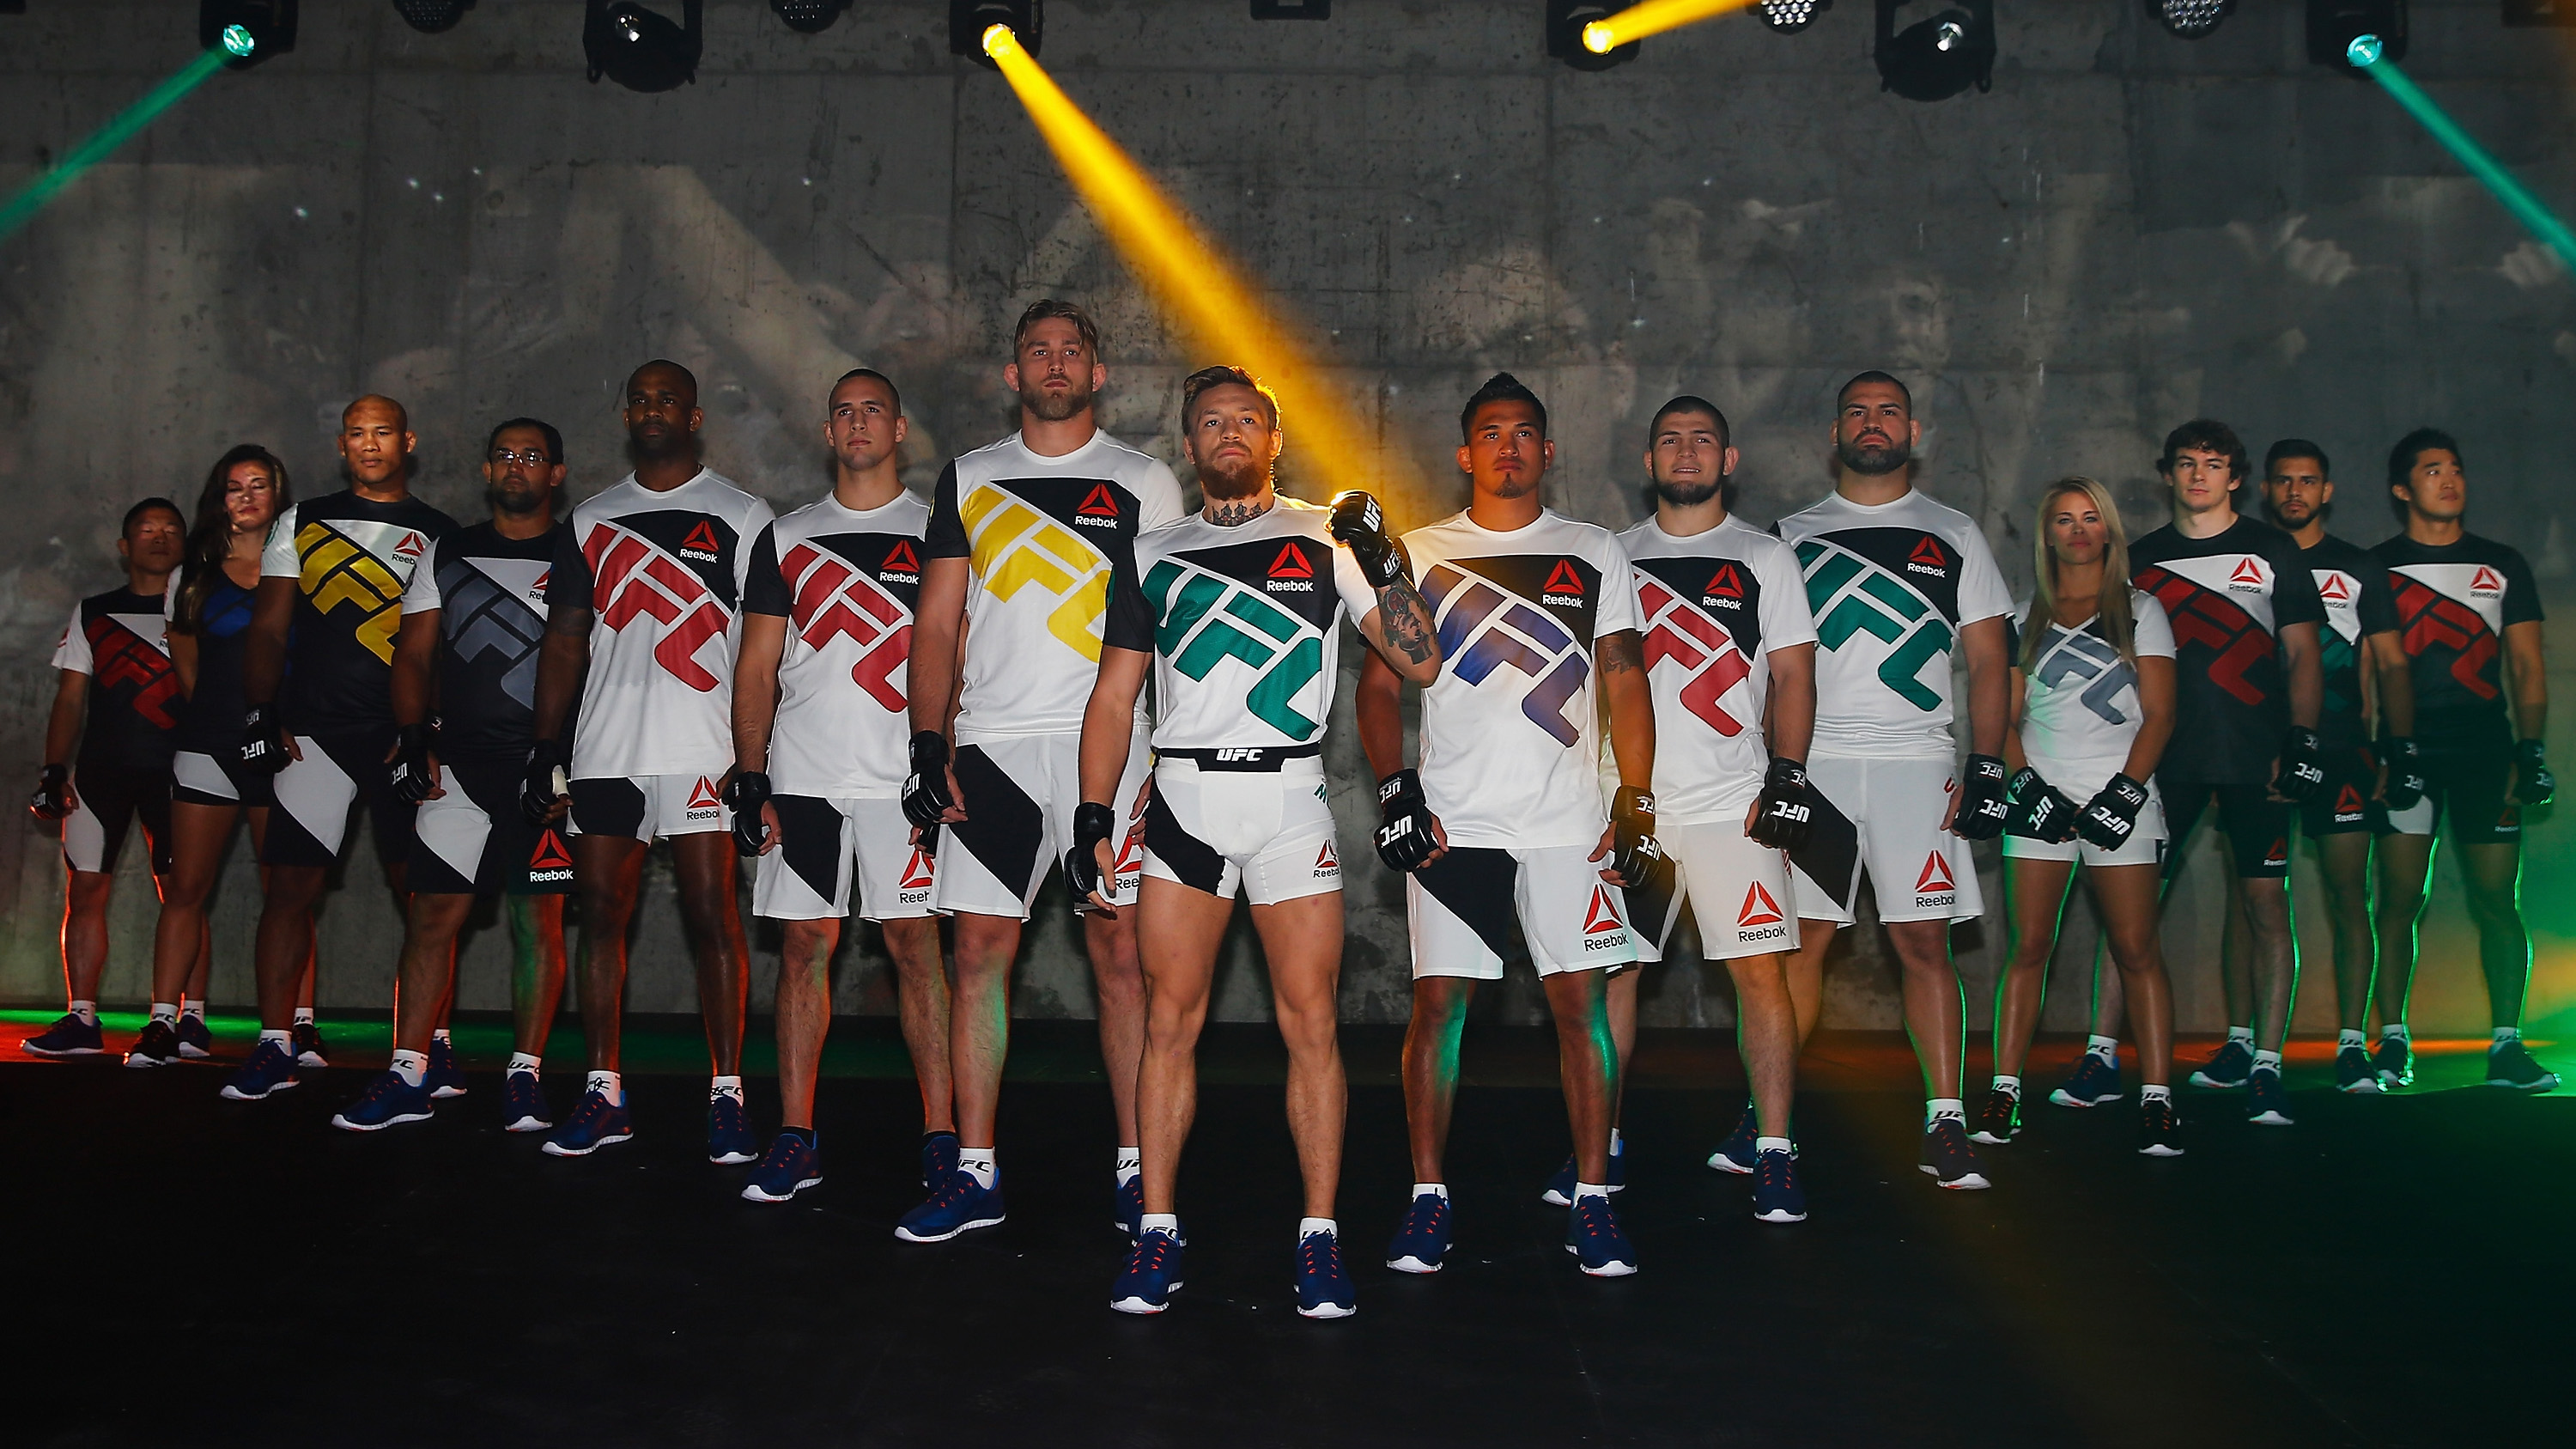 UFC athletes including Conor McGregor, Alexander Gustafsson, Anthony Pettis and more pose for a picture in the new Reebok fight kits at the unveiling press event.